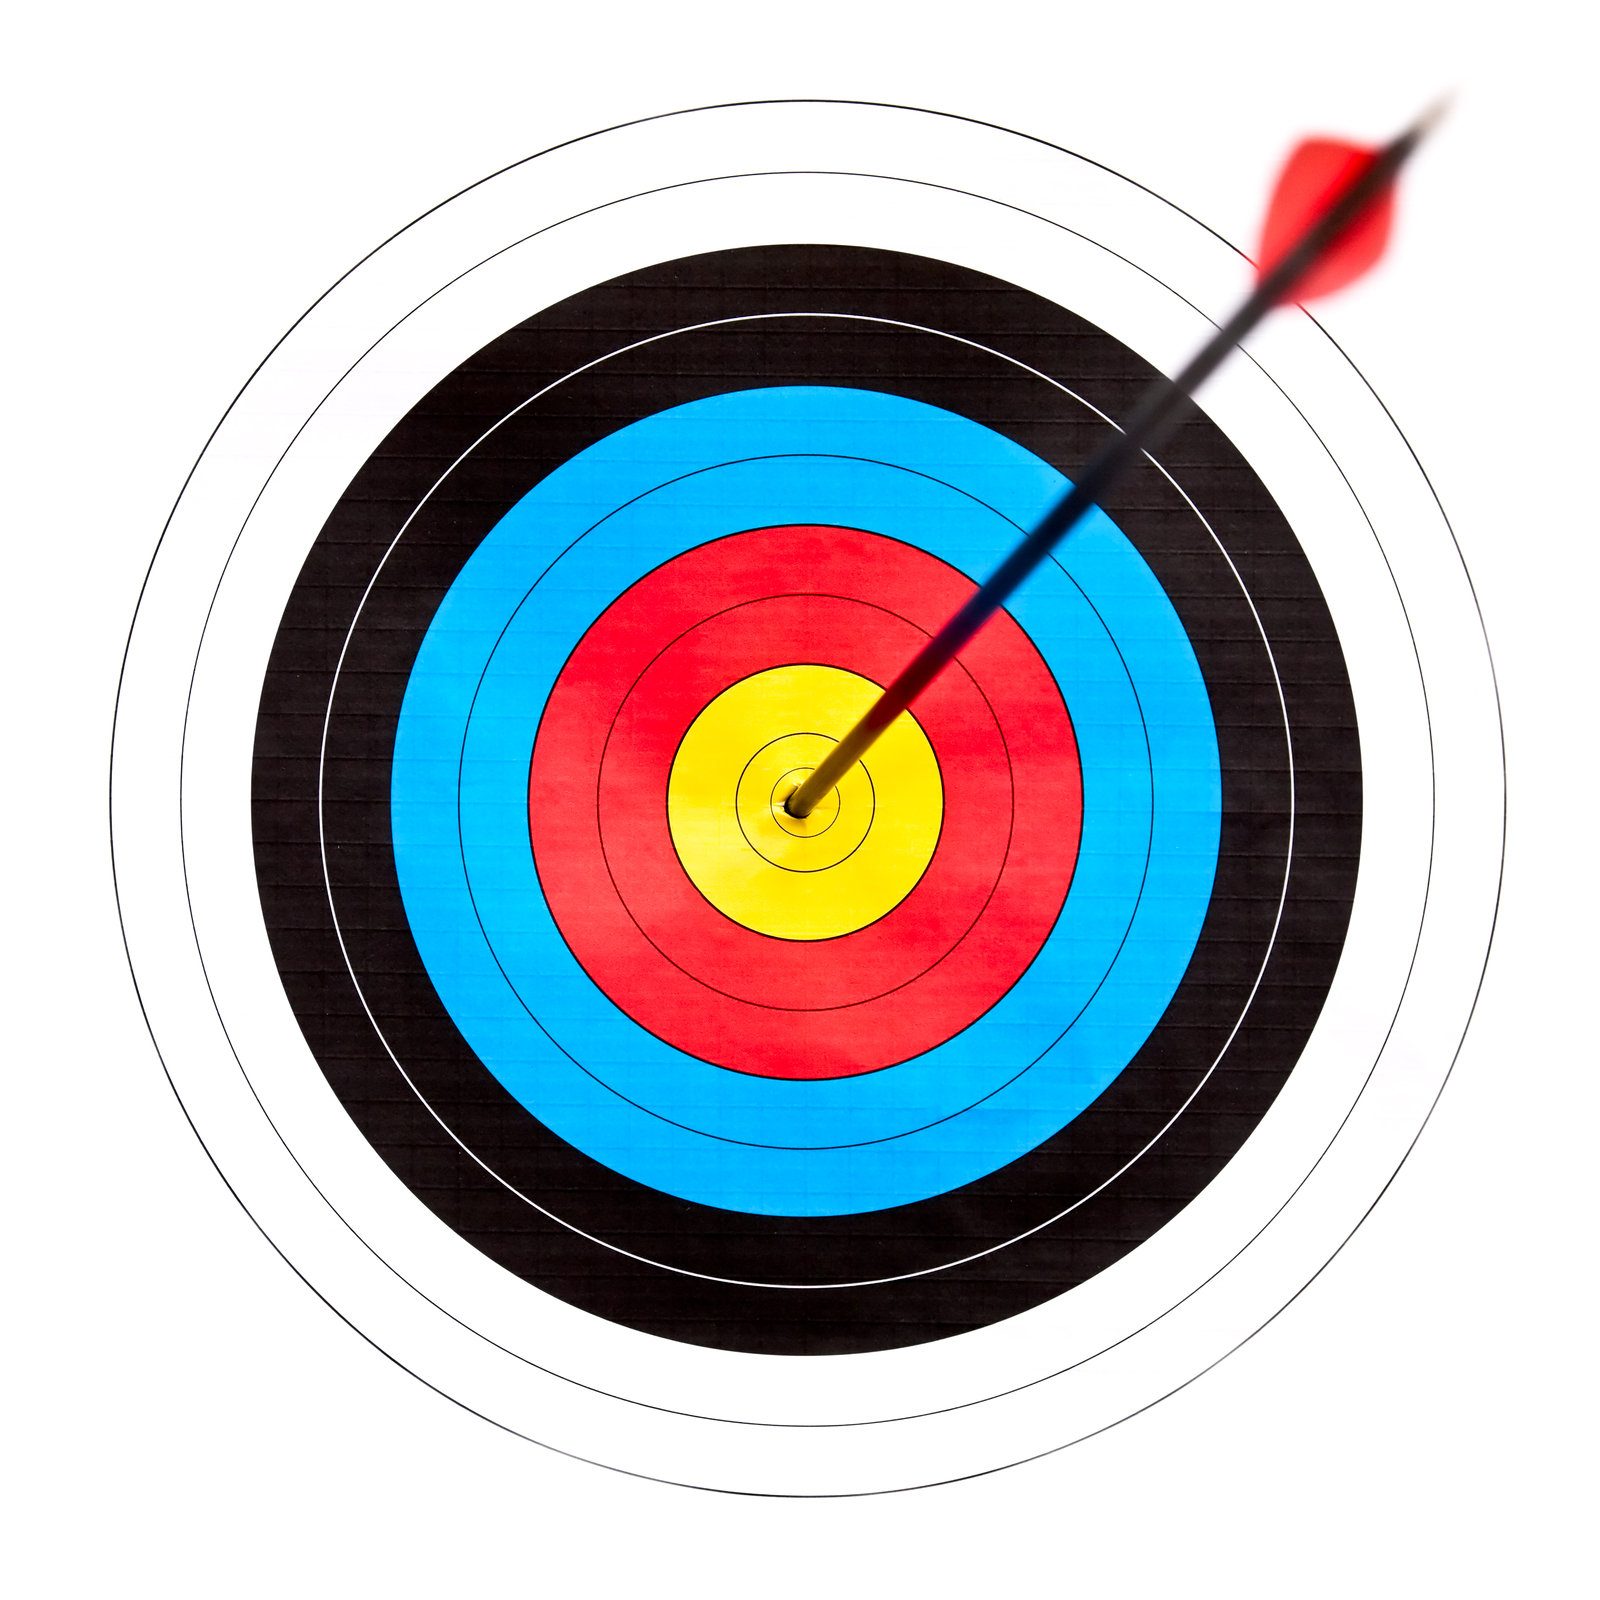 Archery clipart shooting range. Target silhouette at getdrawings